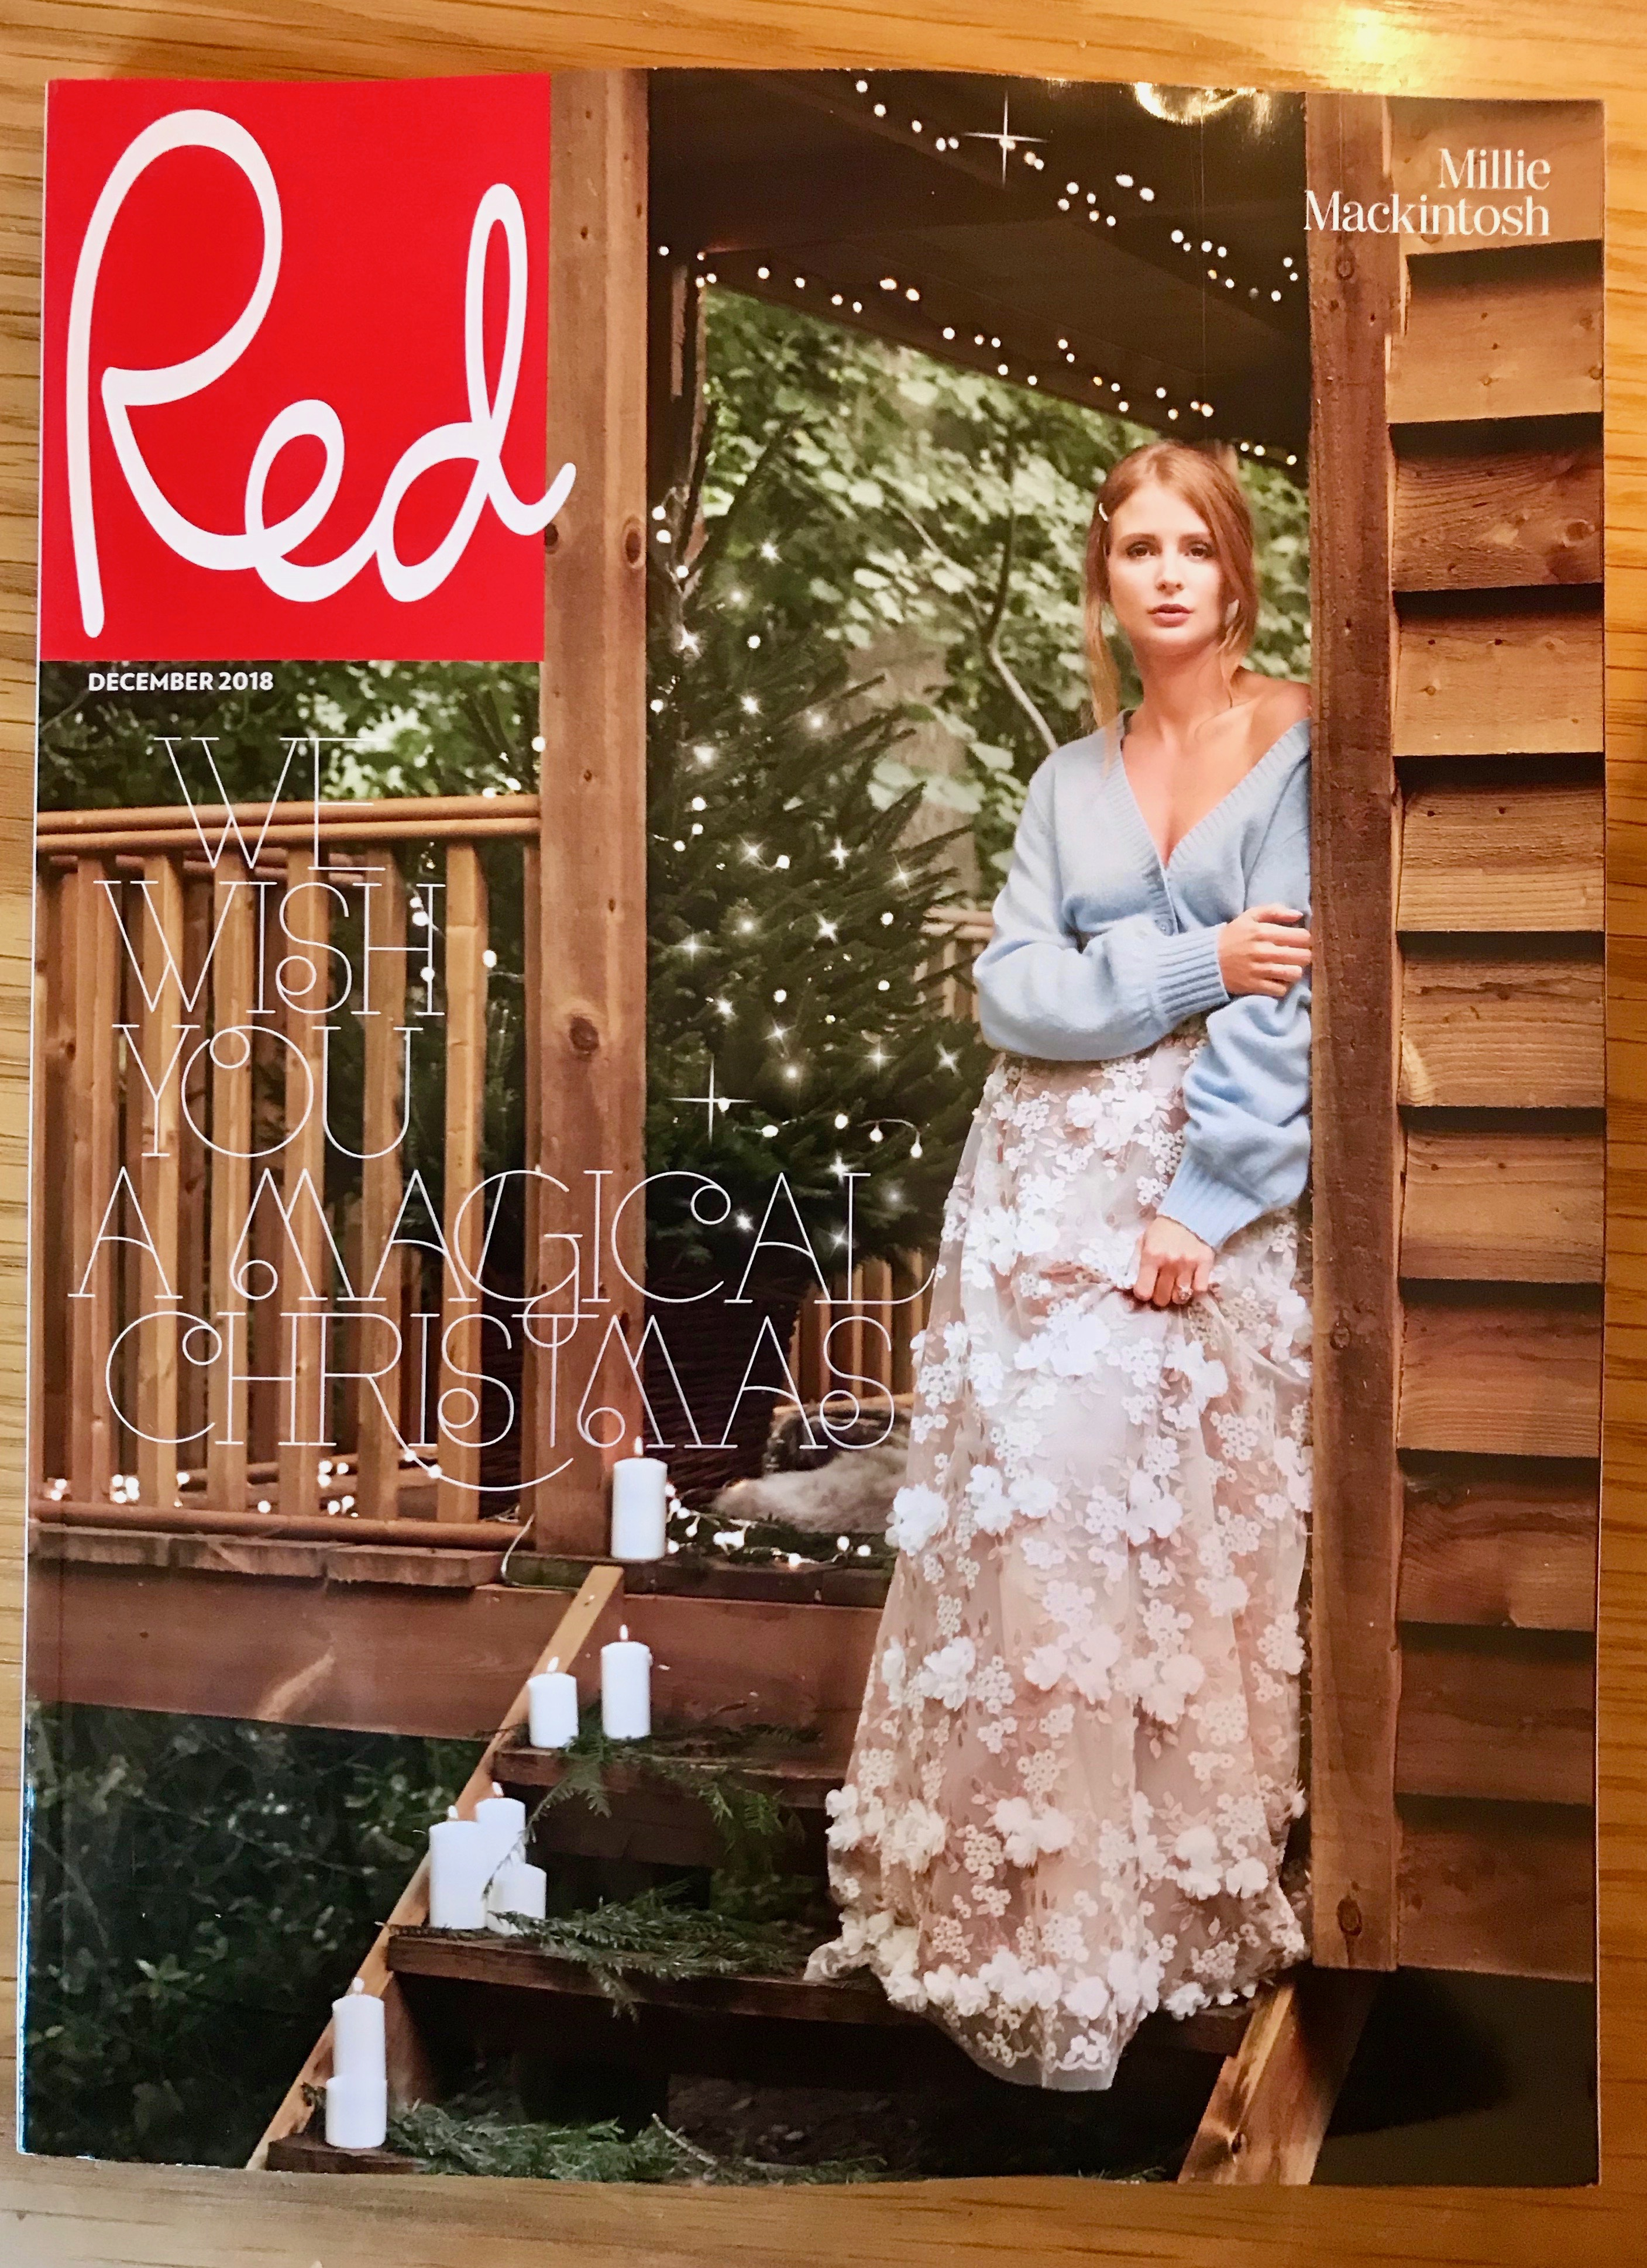 The Christmas edition of Red Magazine has arrived.